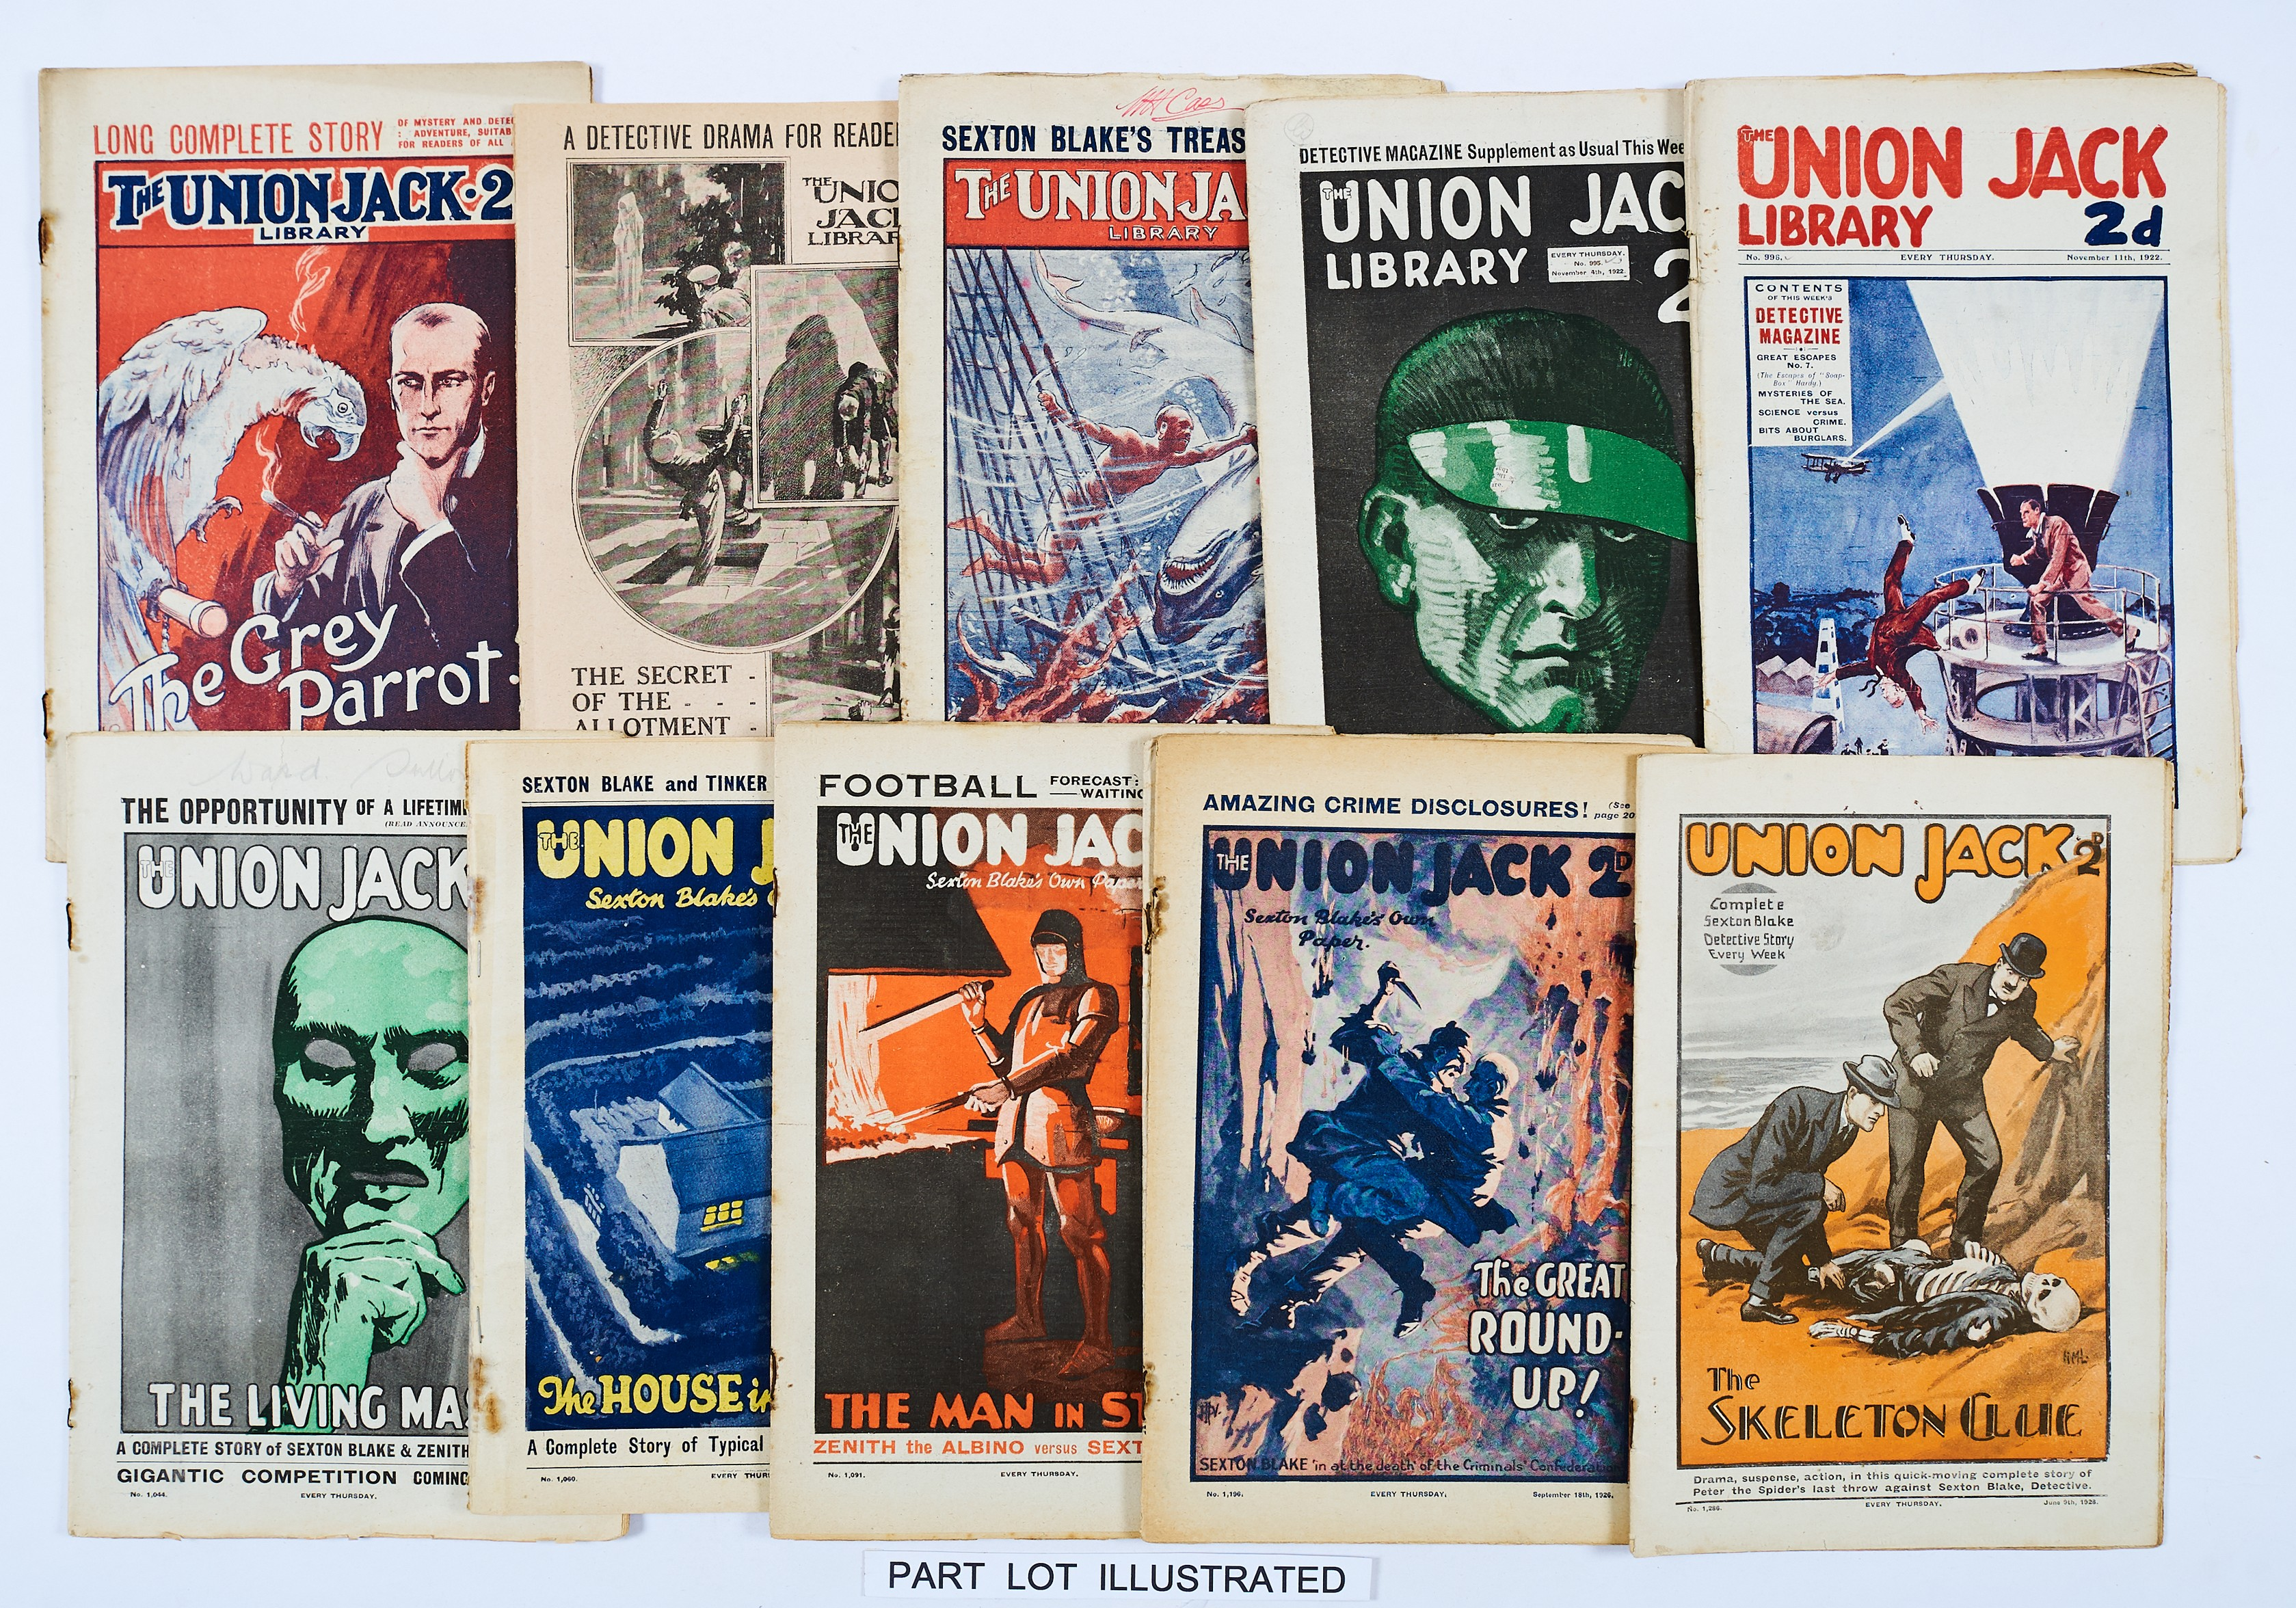 Lot 5 - Union Jack (1916-28) 63 issues of Sexton Blake's Own Paper between 665-1312. All with rusty